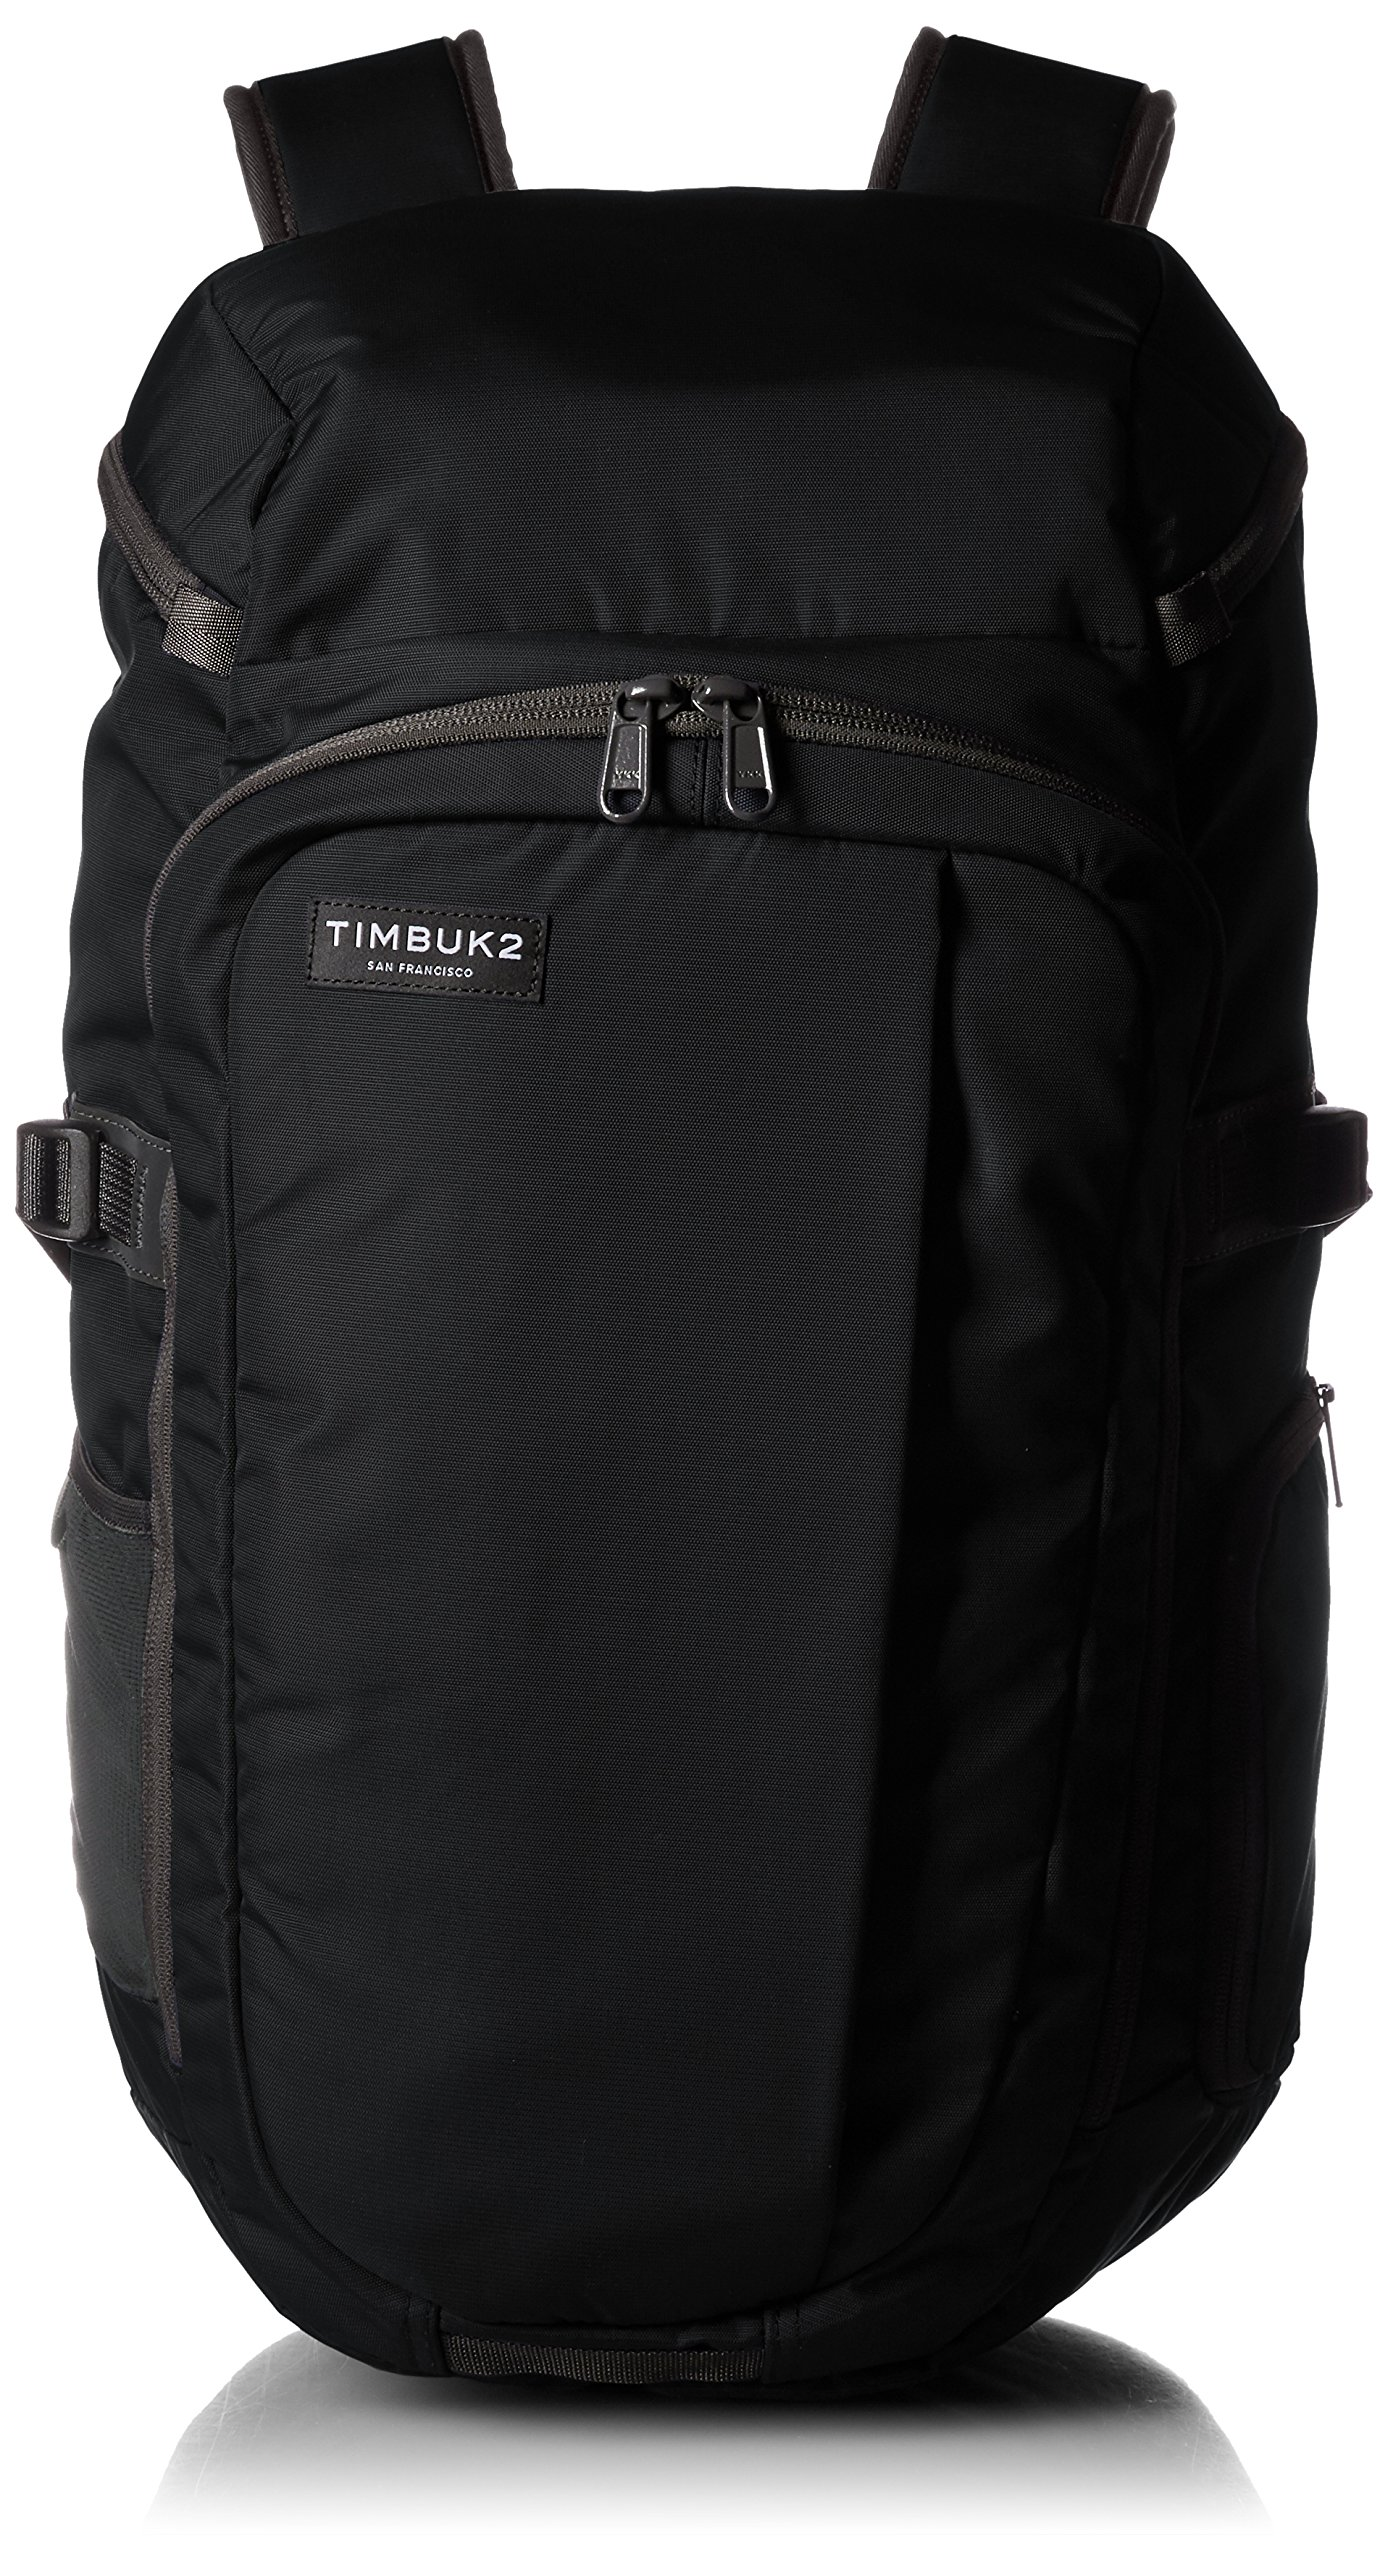 Timbuk2 552 Armory Pack, Jet Black, One Size by Timbuk2